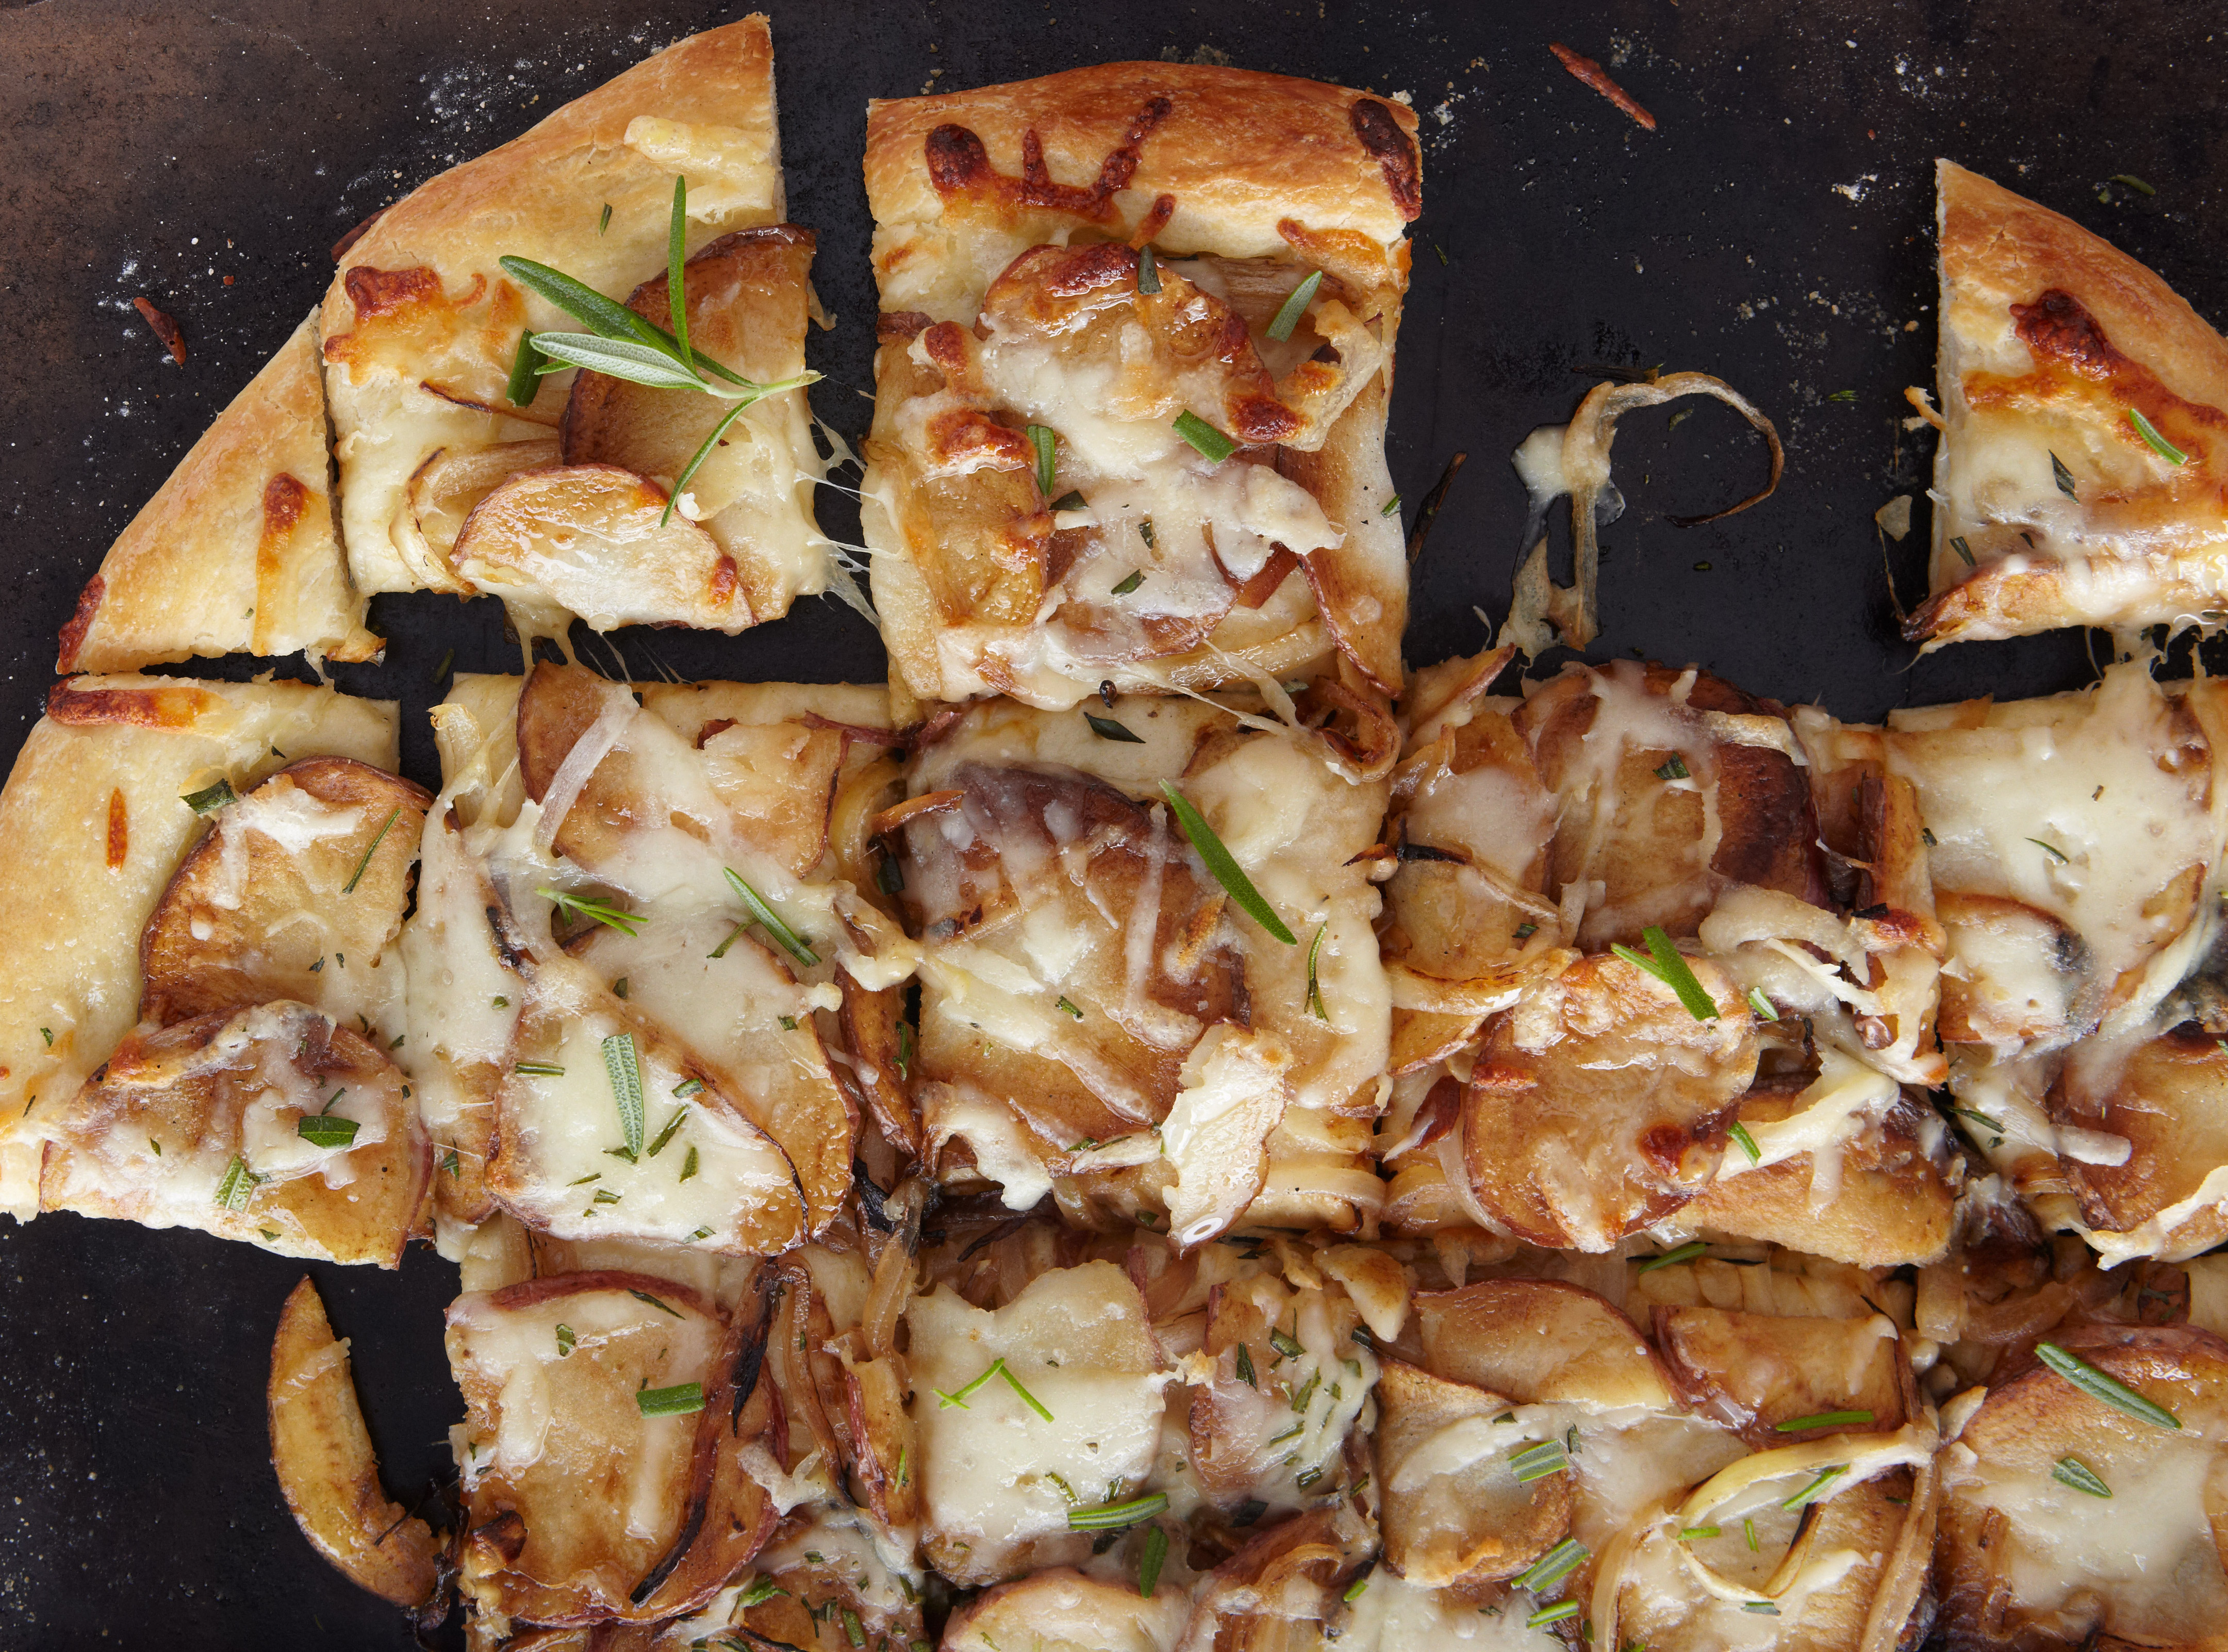 Potato Pizza With Sweet Onions and Rosemary